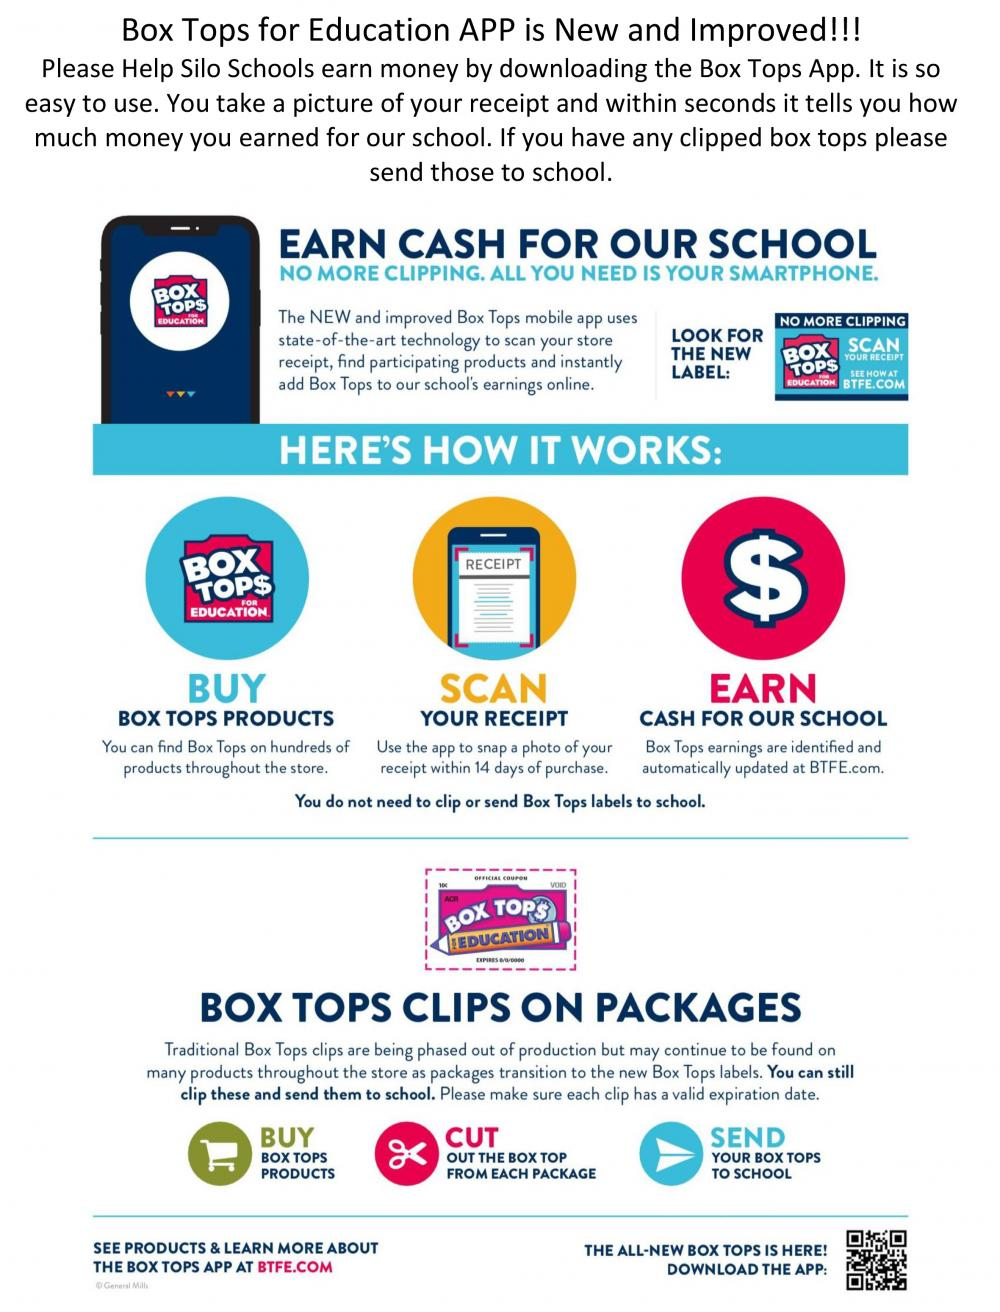 Download the Box Tops for Education App to scan receipts and earn money for your school.